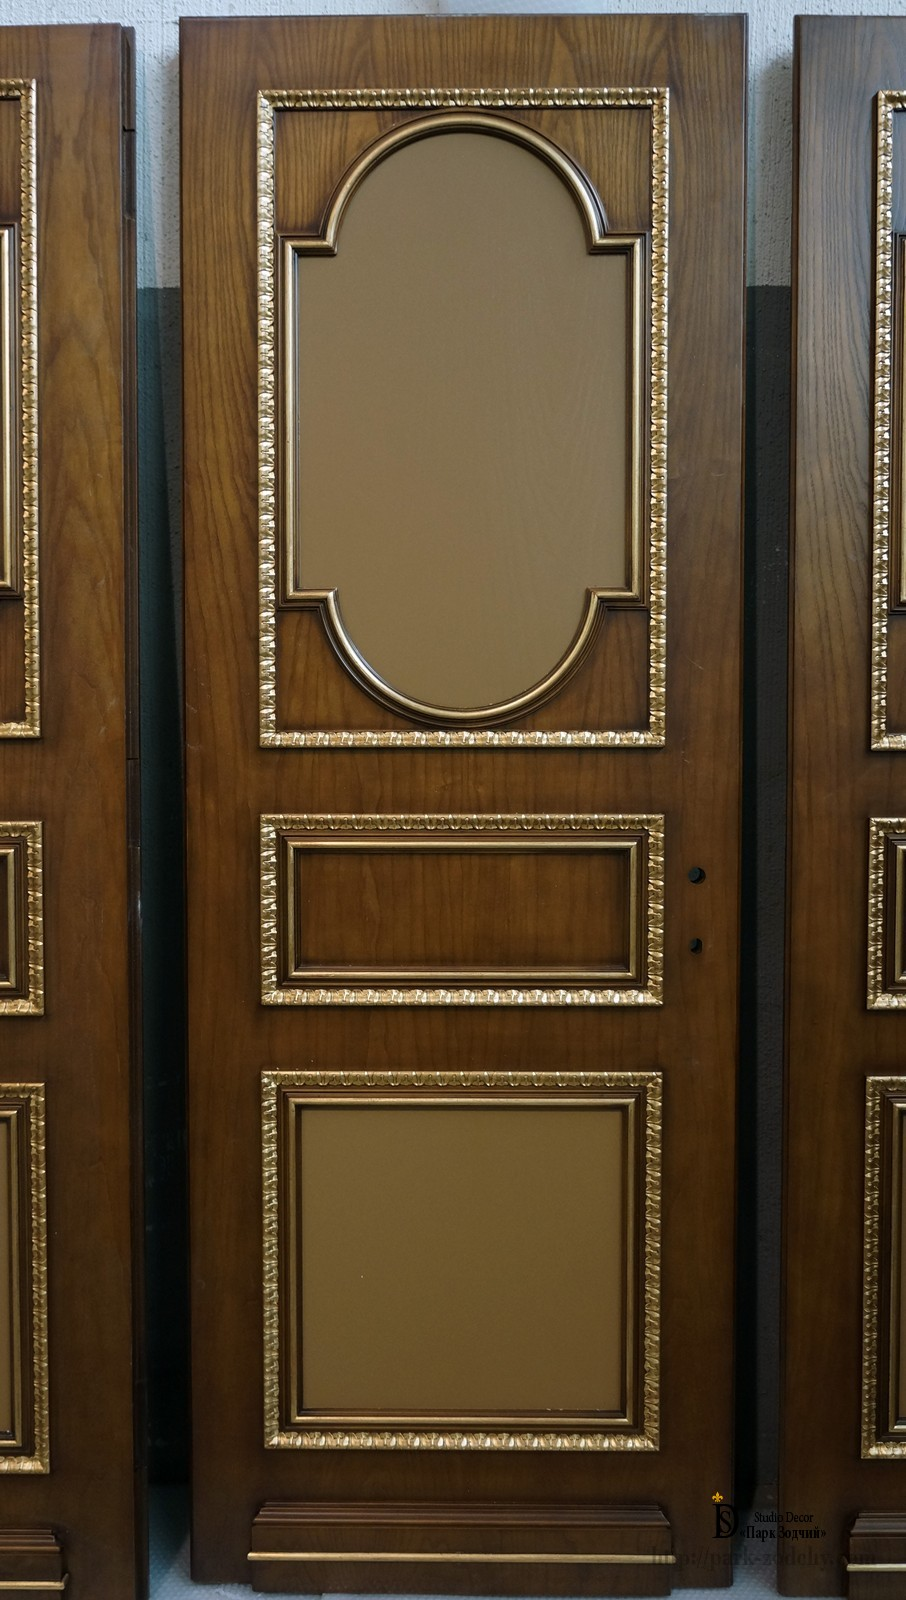 The finish of the door leaf gilding